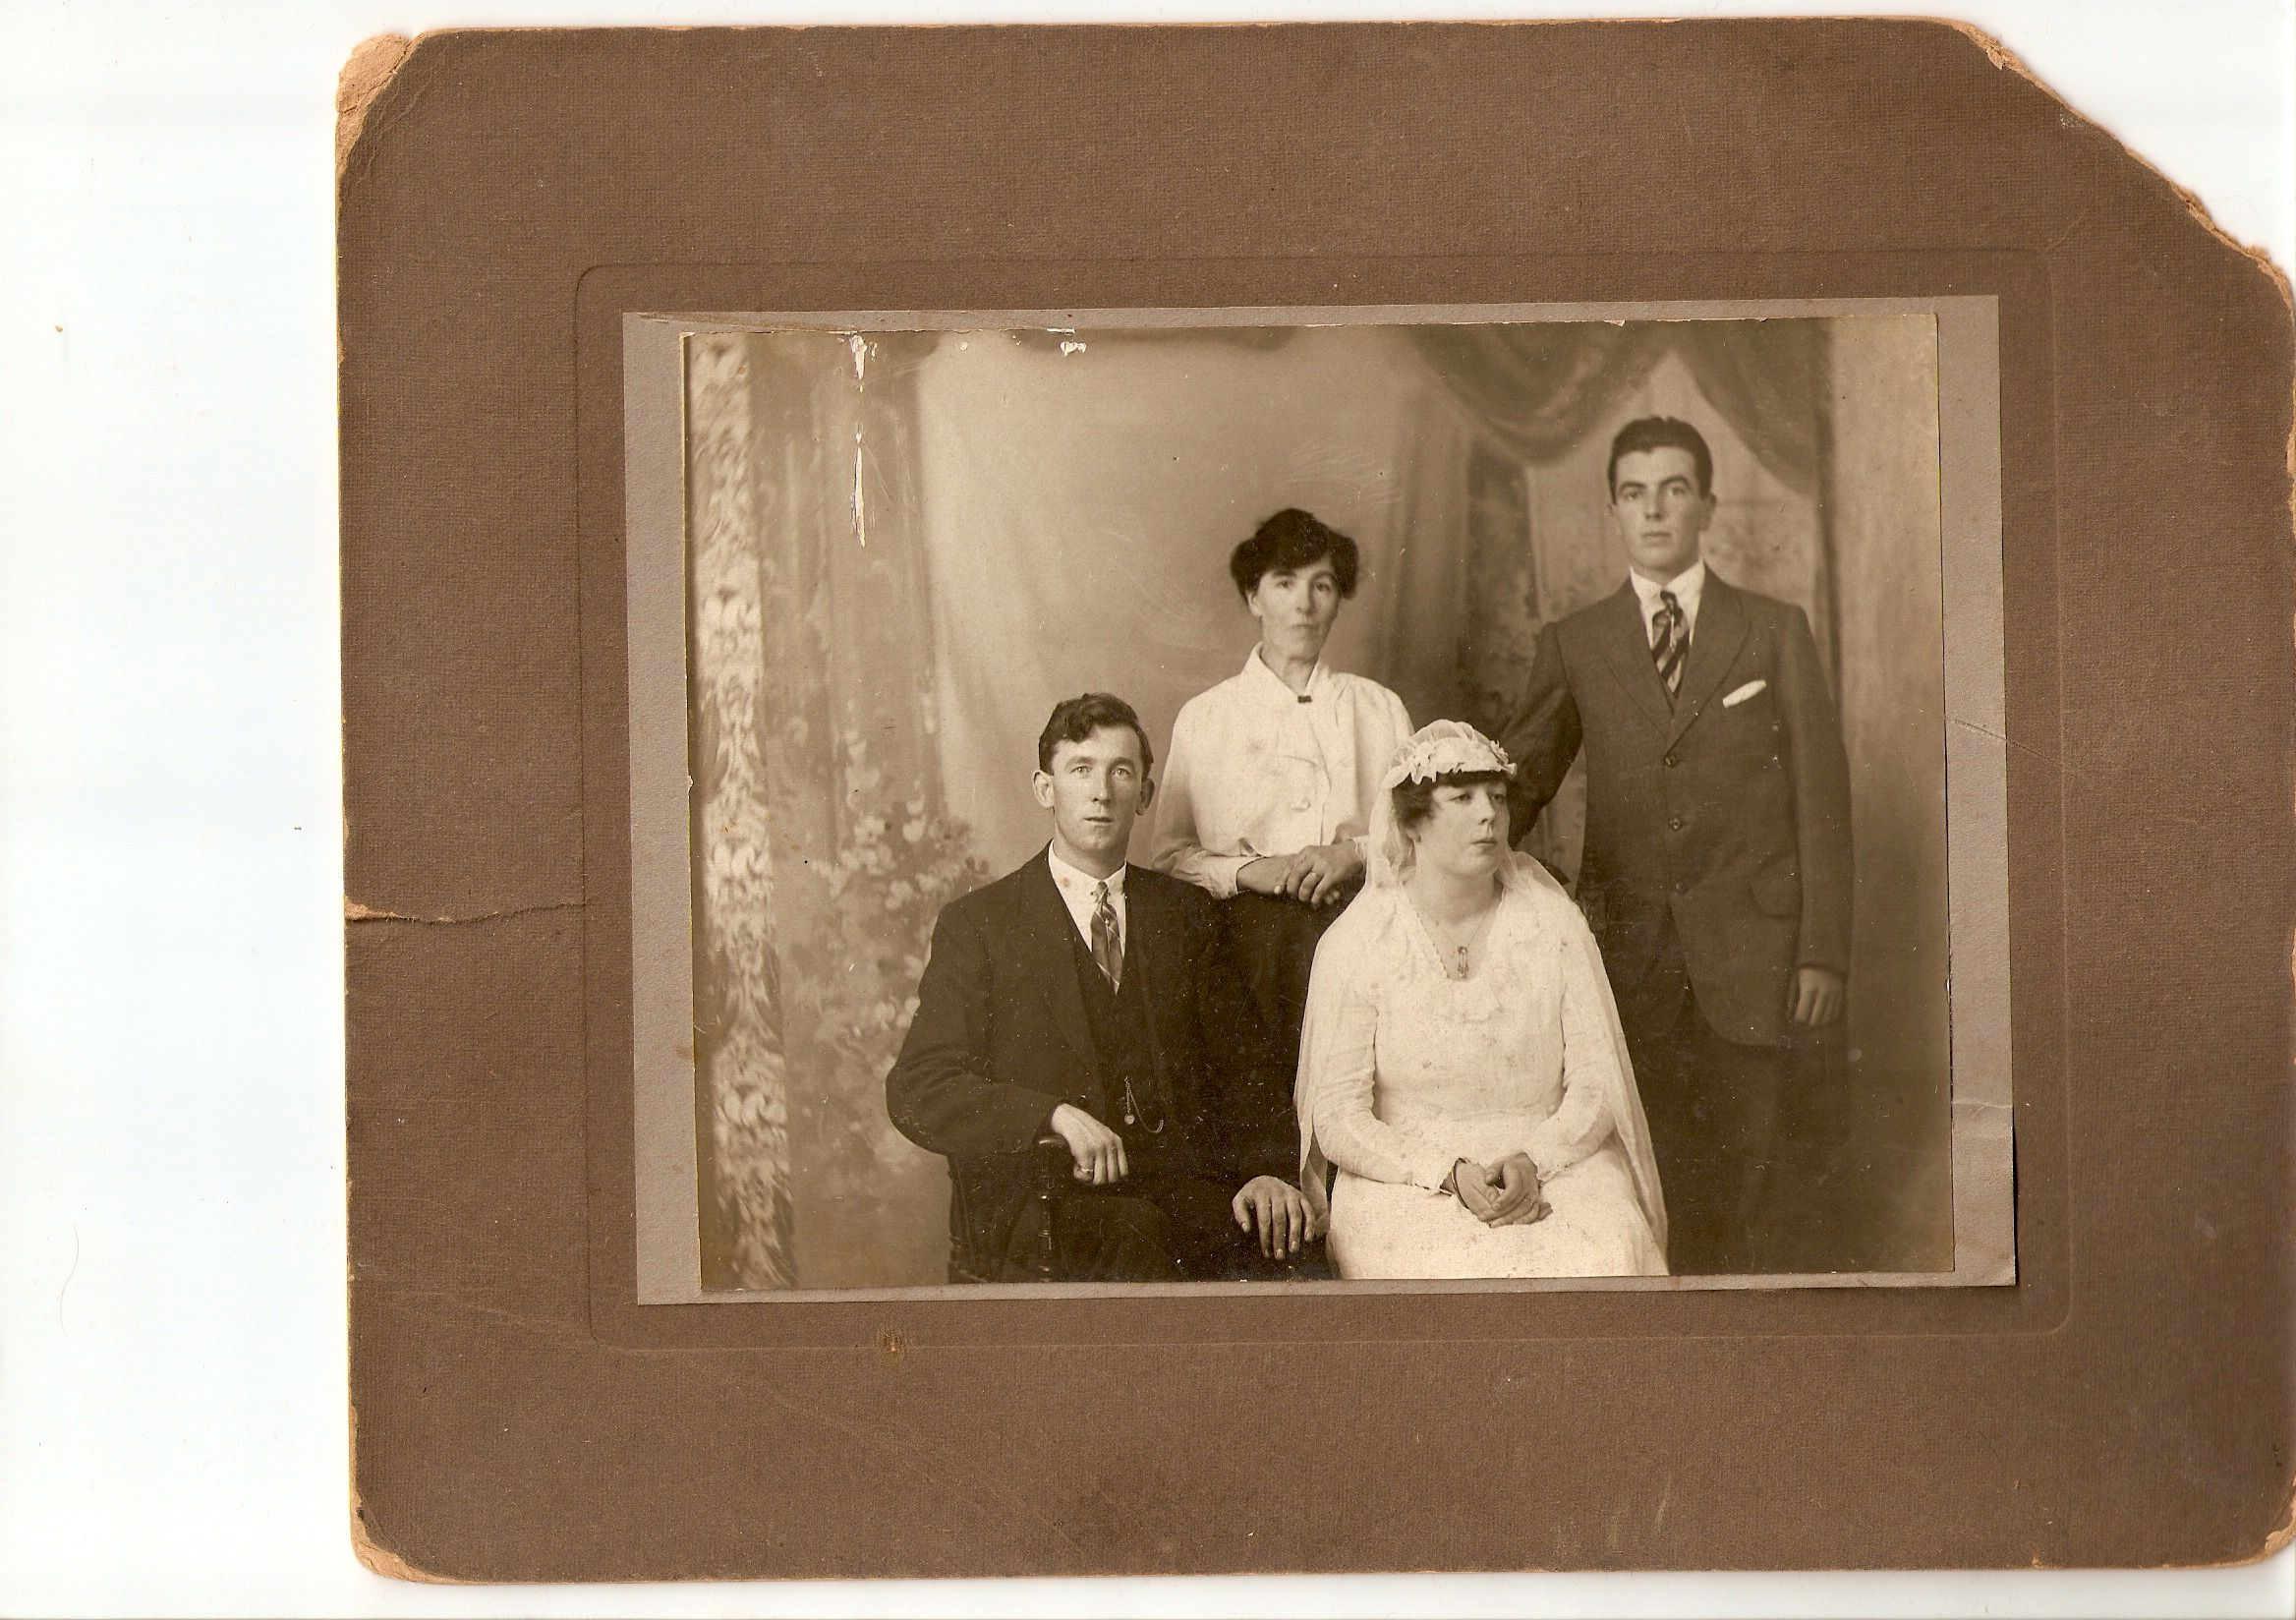 Competition Oldest wedding photo results (With images